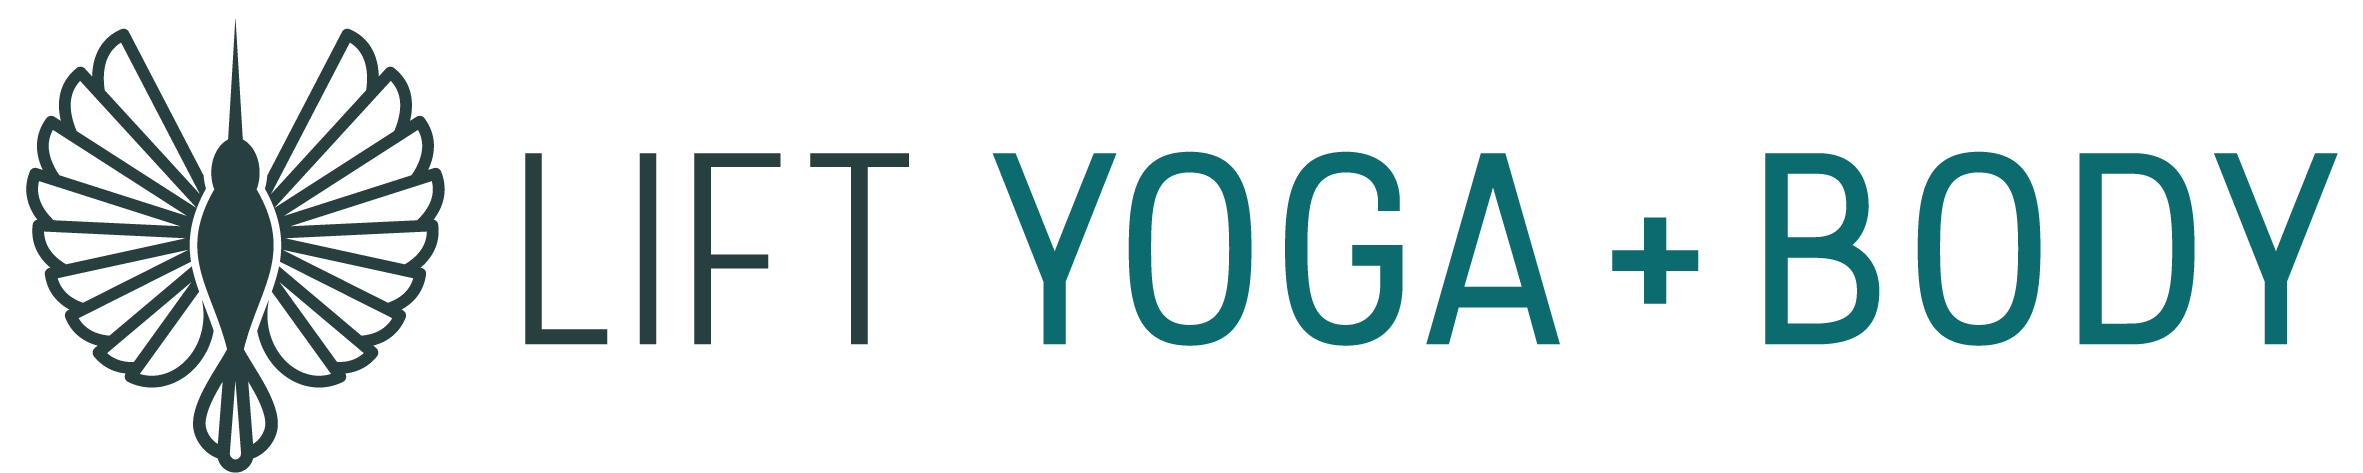 Lift Yoga + Body Main Logo